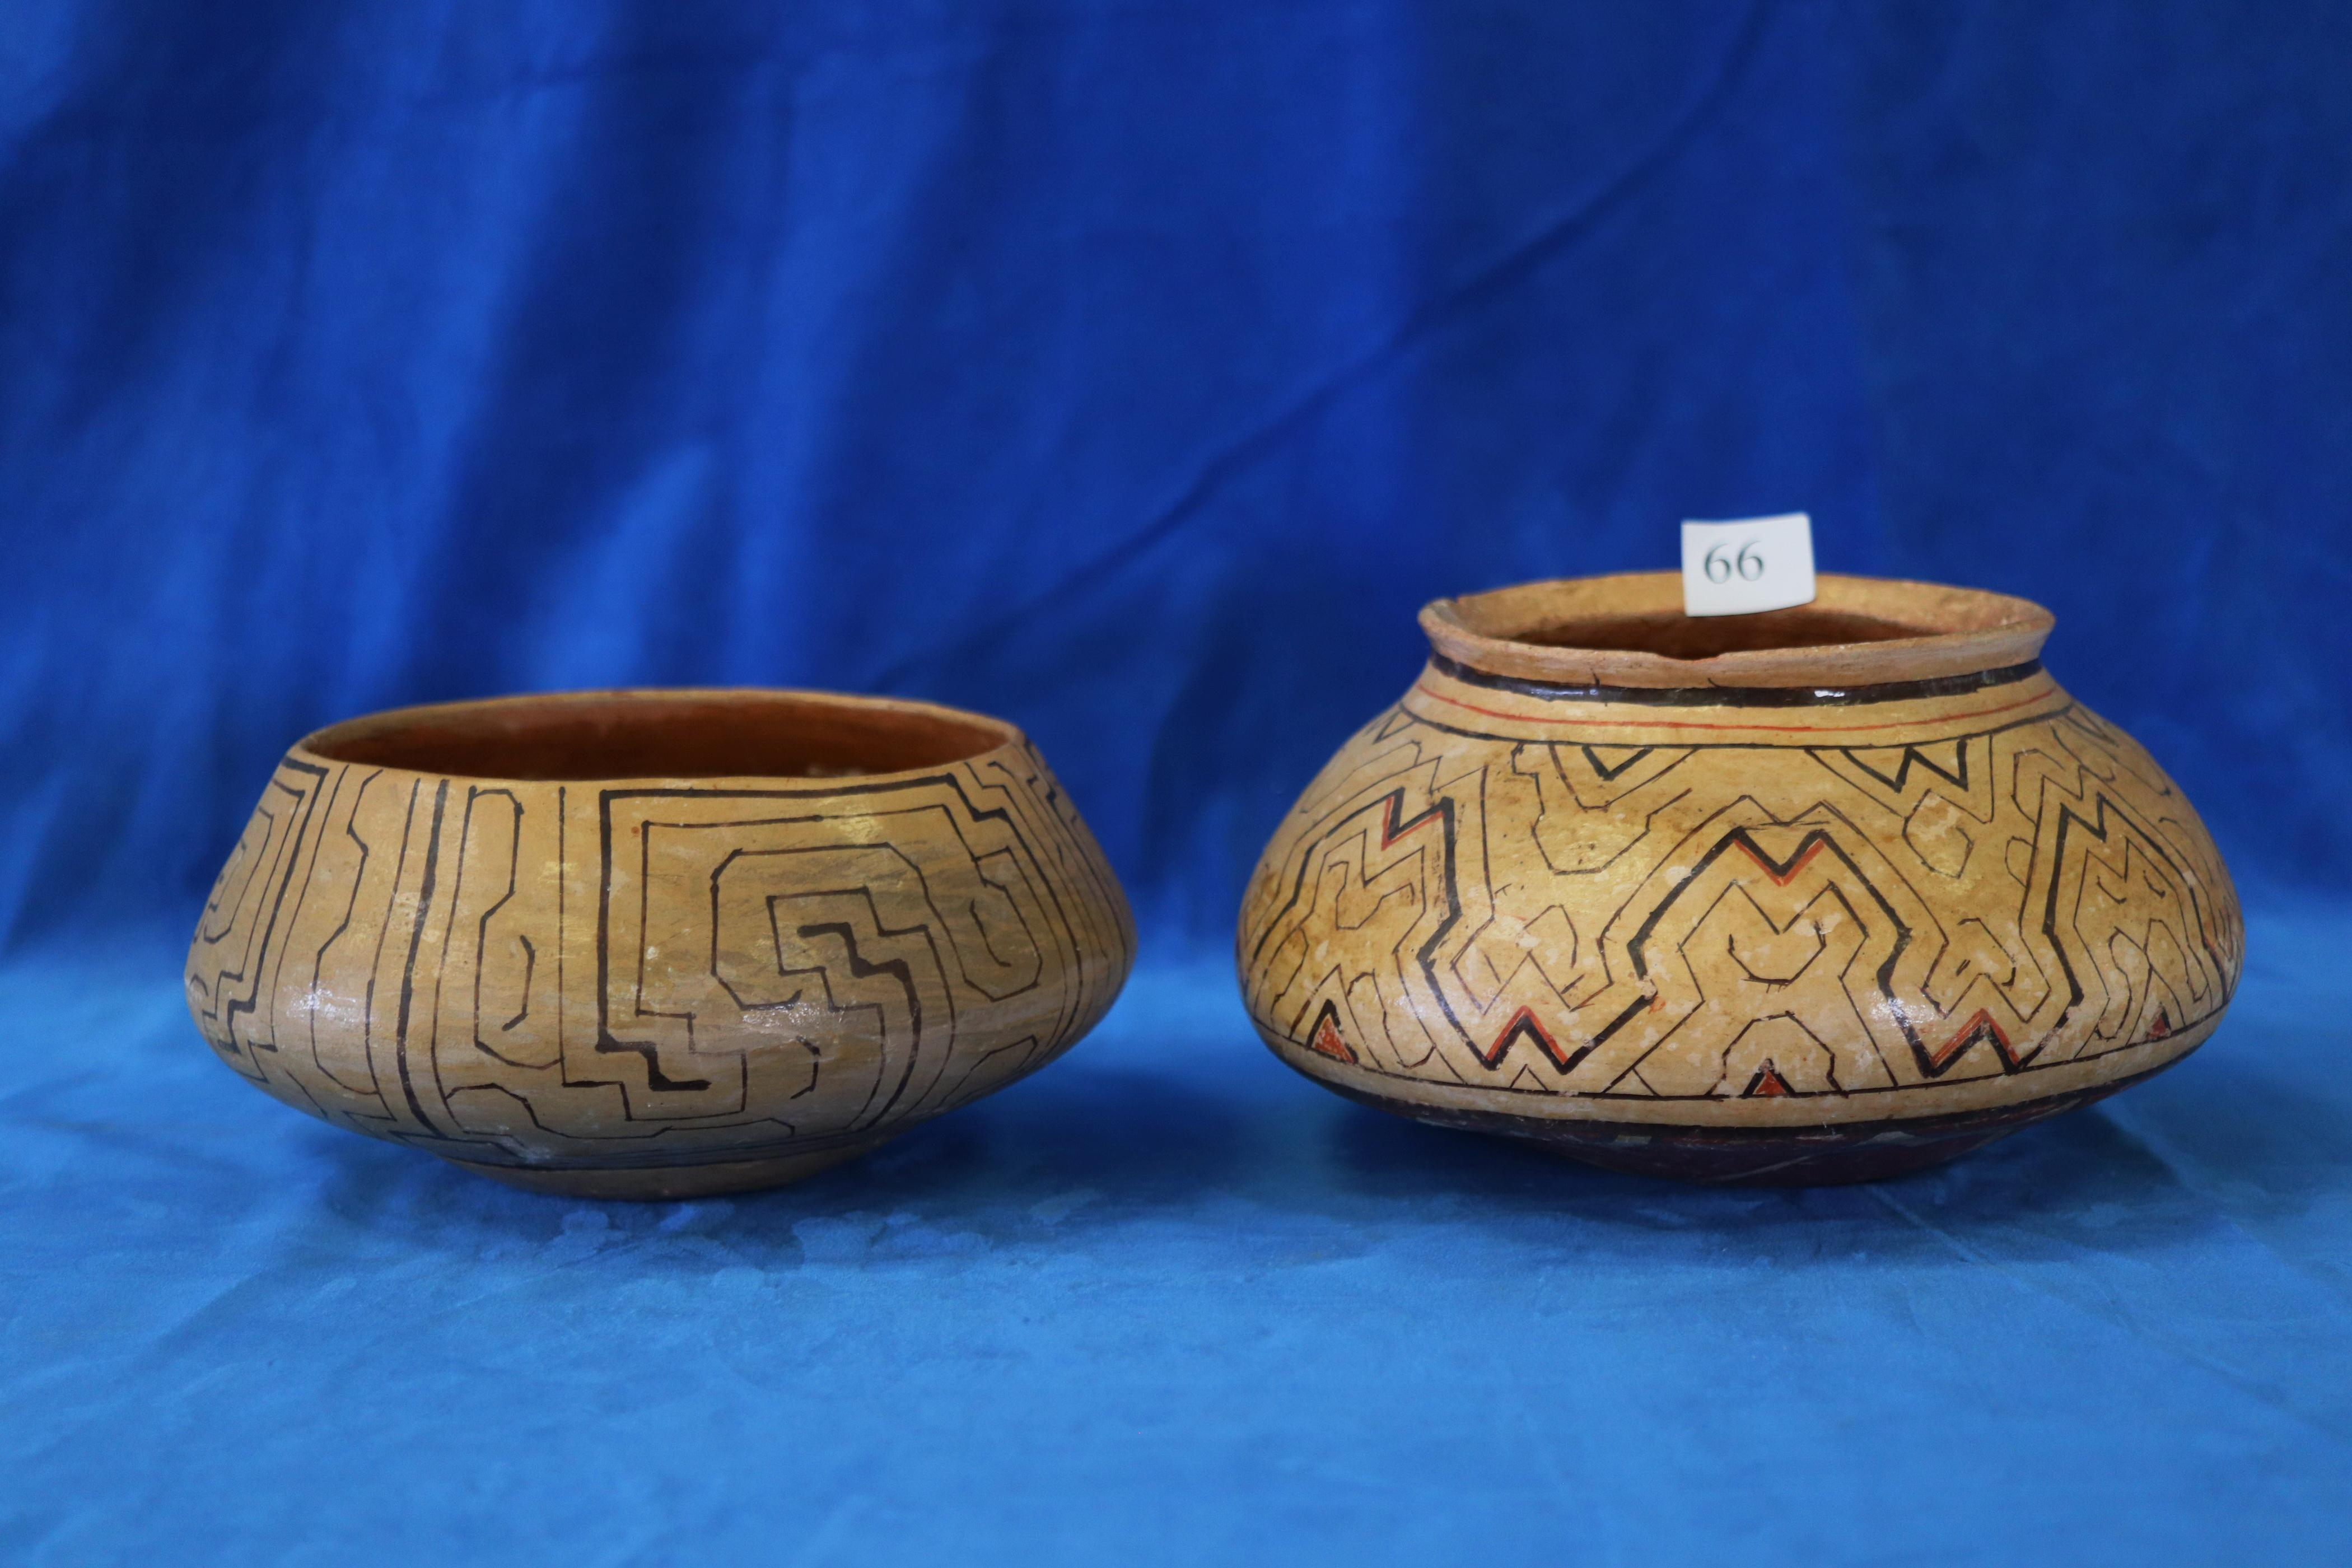 2 X PERUVIAN STYLE POTTERY BOWLS, HAND PAINTED DECORATIONS, A/F